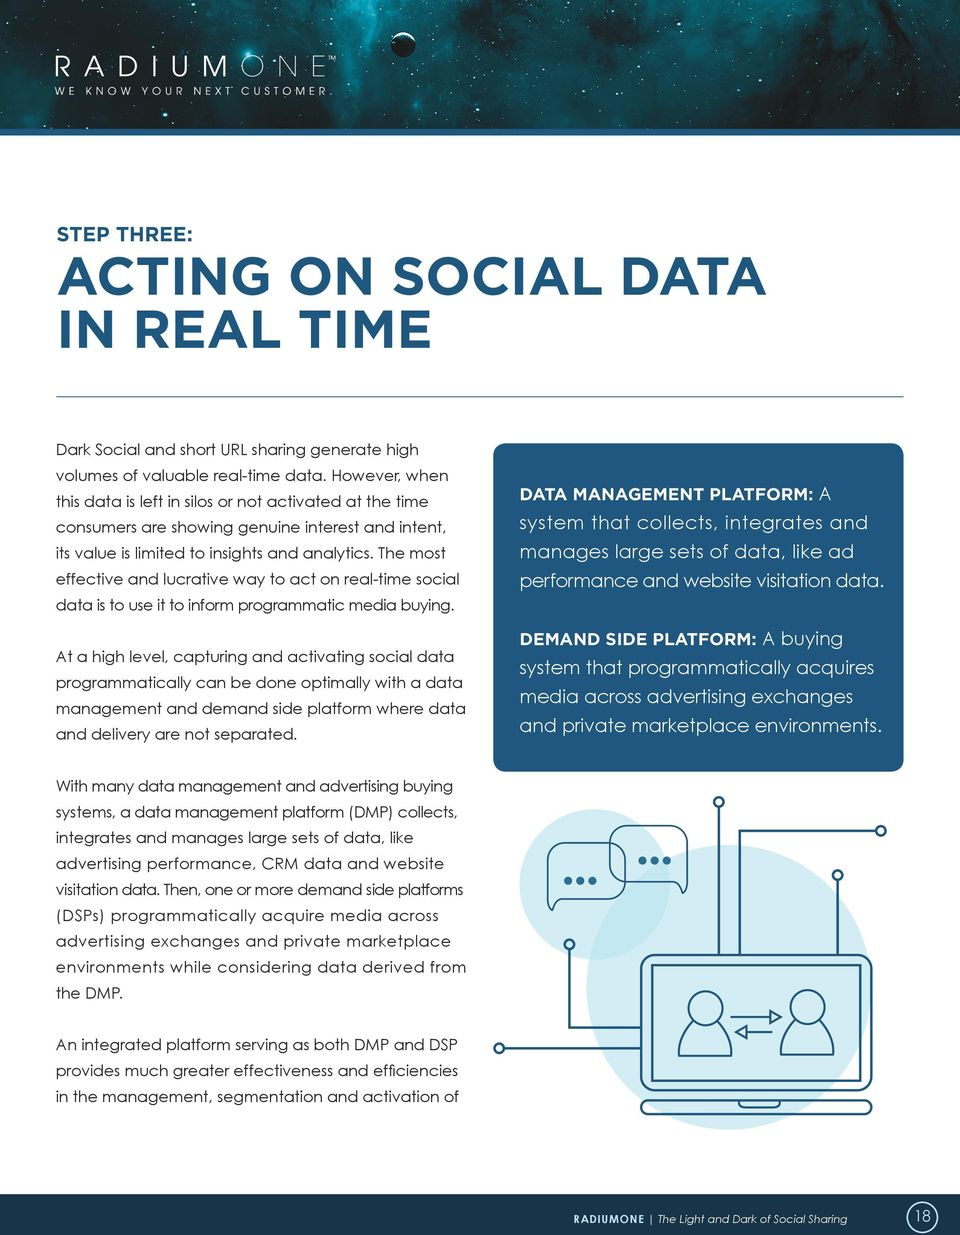 The most effective and lucrative way to act on real-time social data is to use it to inform programmatic media buying.